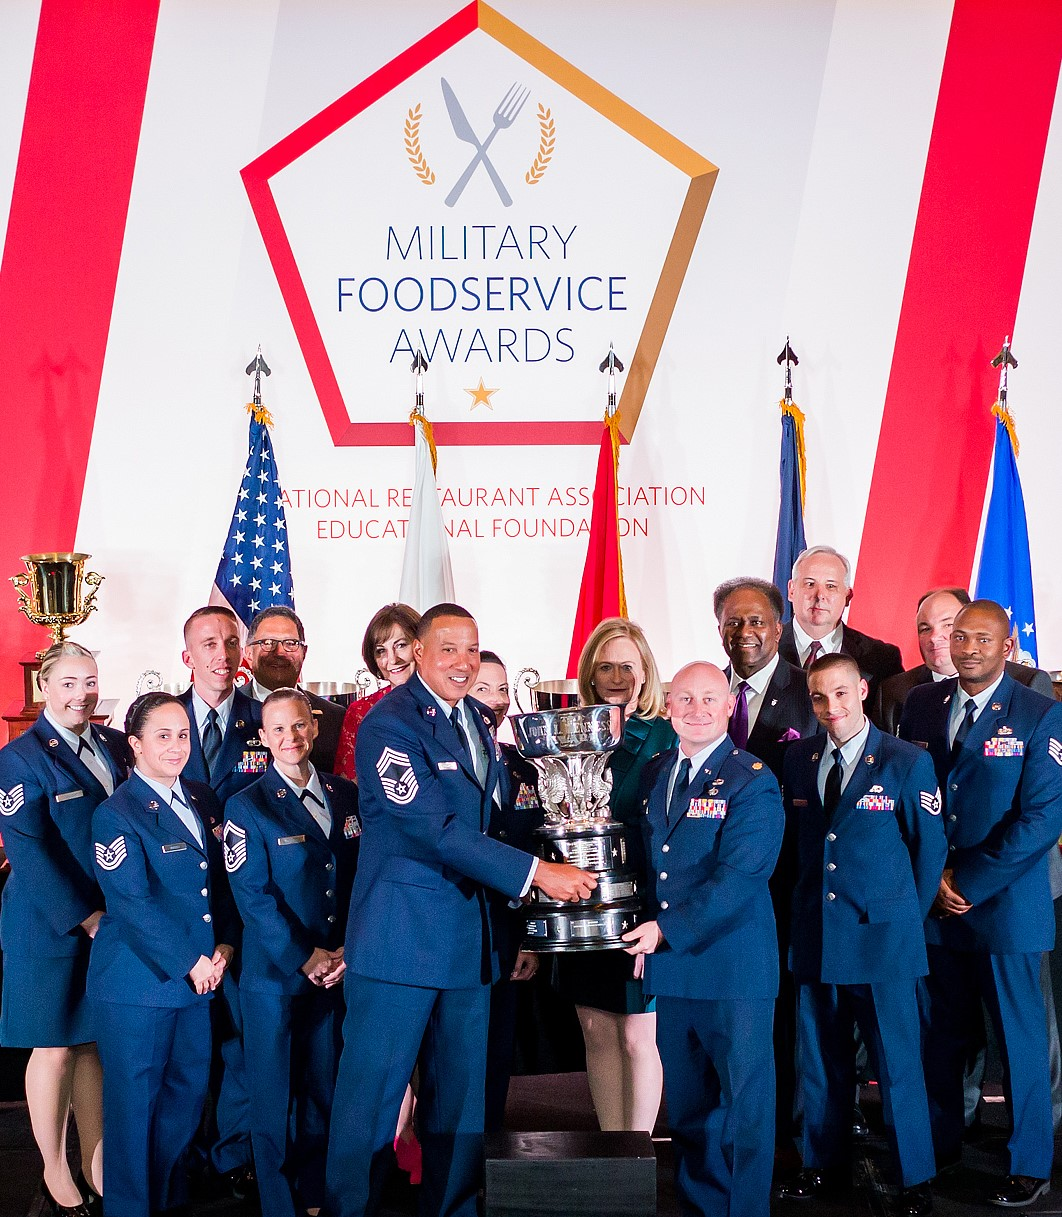 Sodexo's operations at Eglin Air Force Base, 96th Test Wing, AFMC earned the 2019 John L. Hennessy Trophy Award.